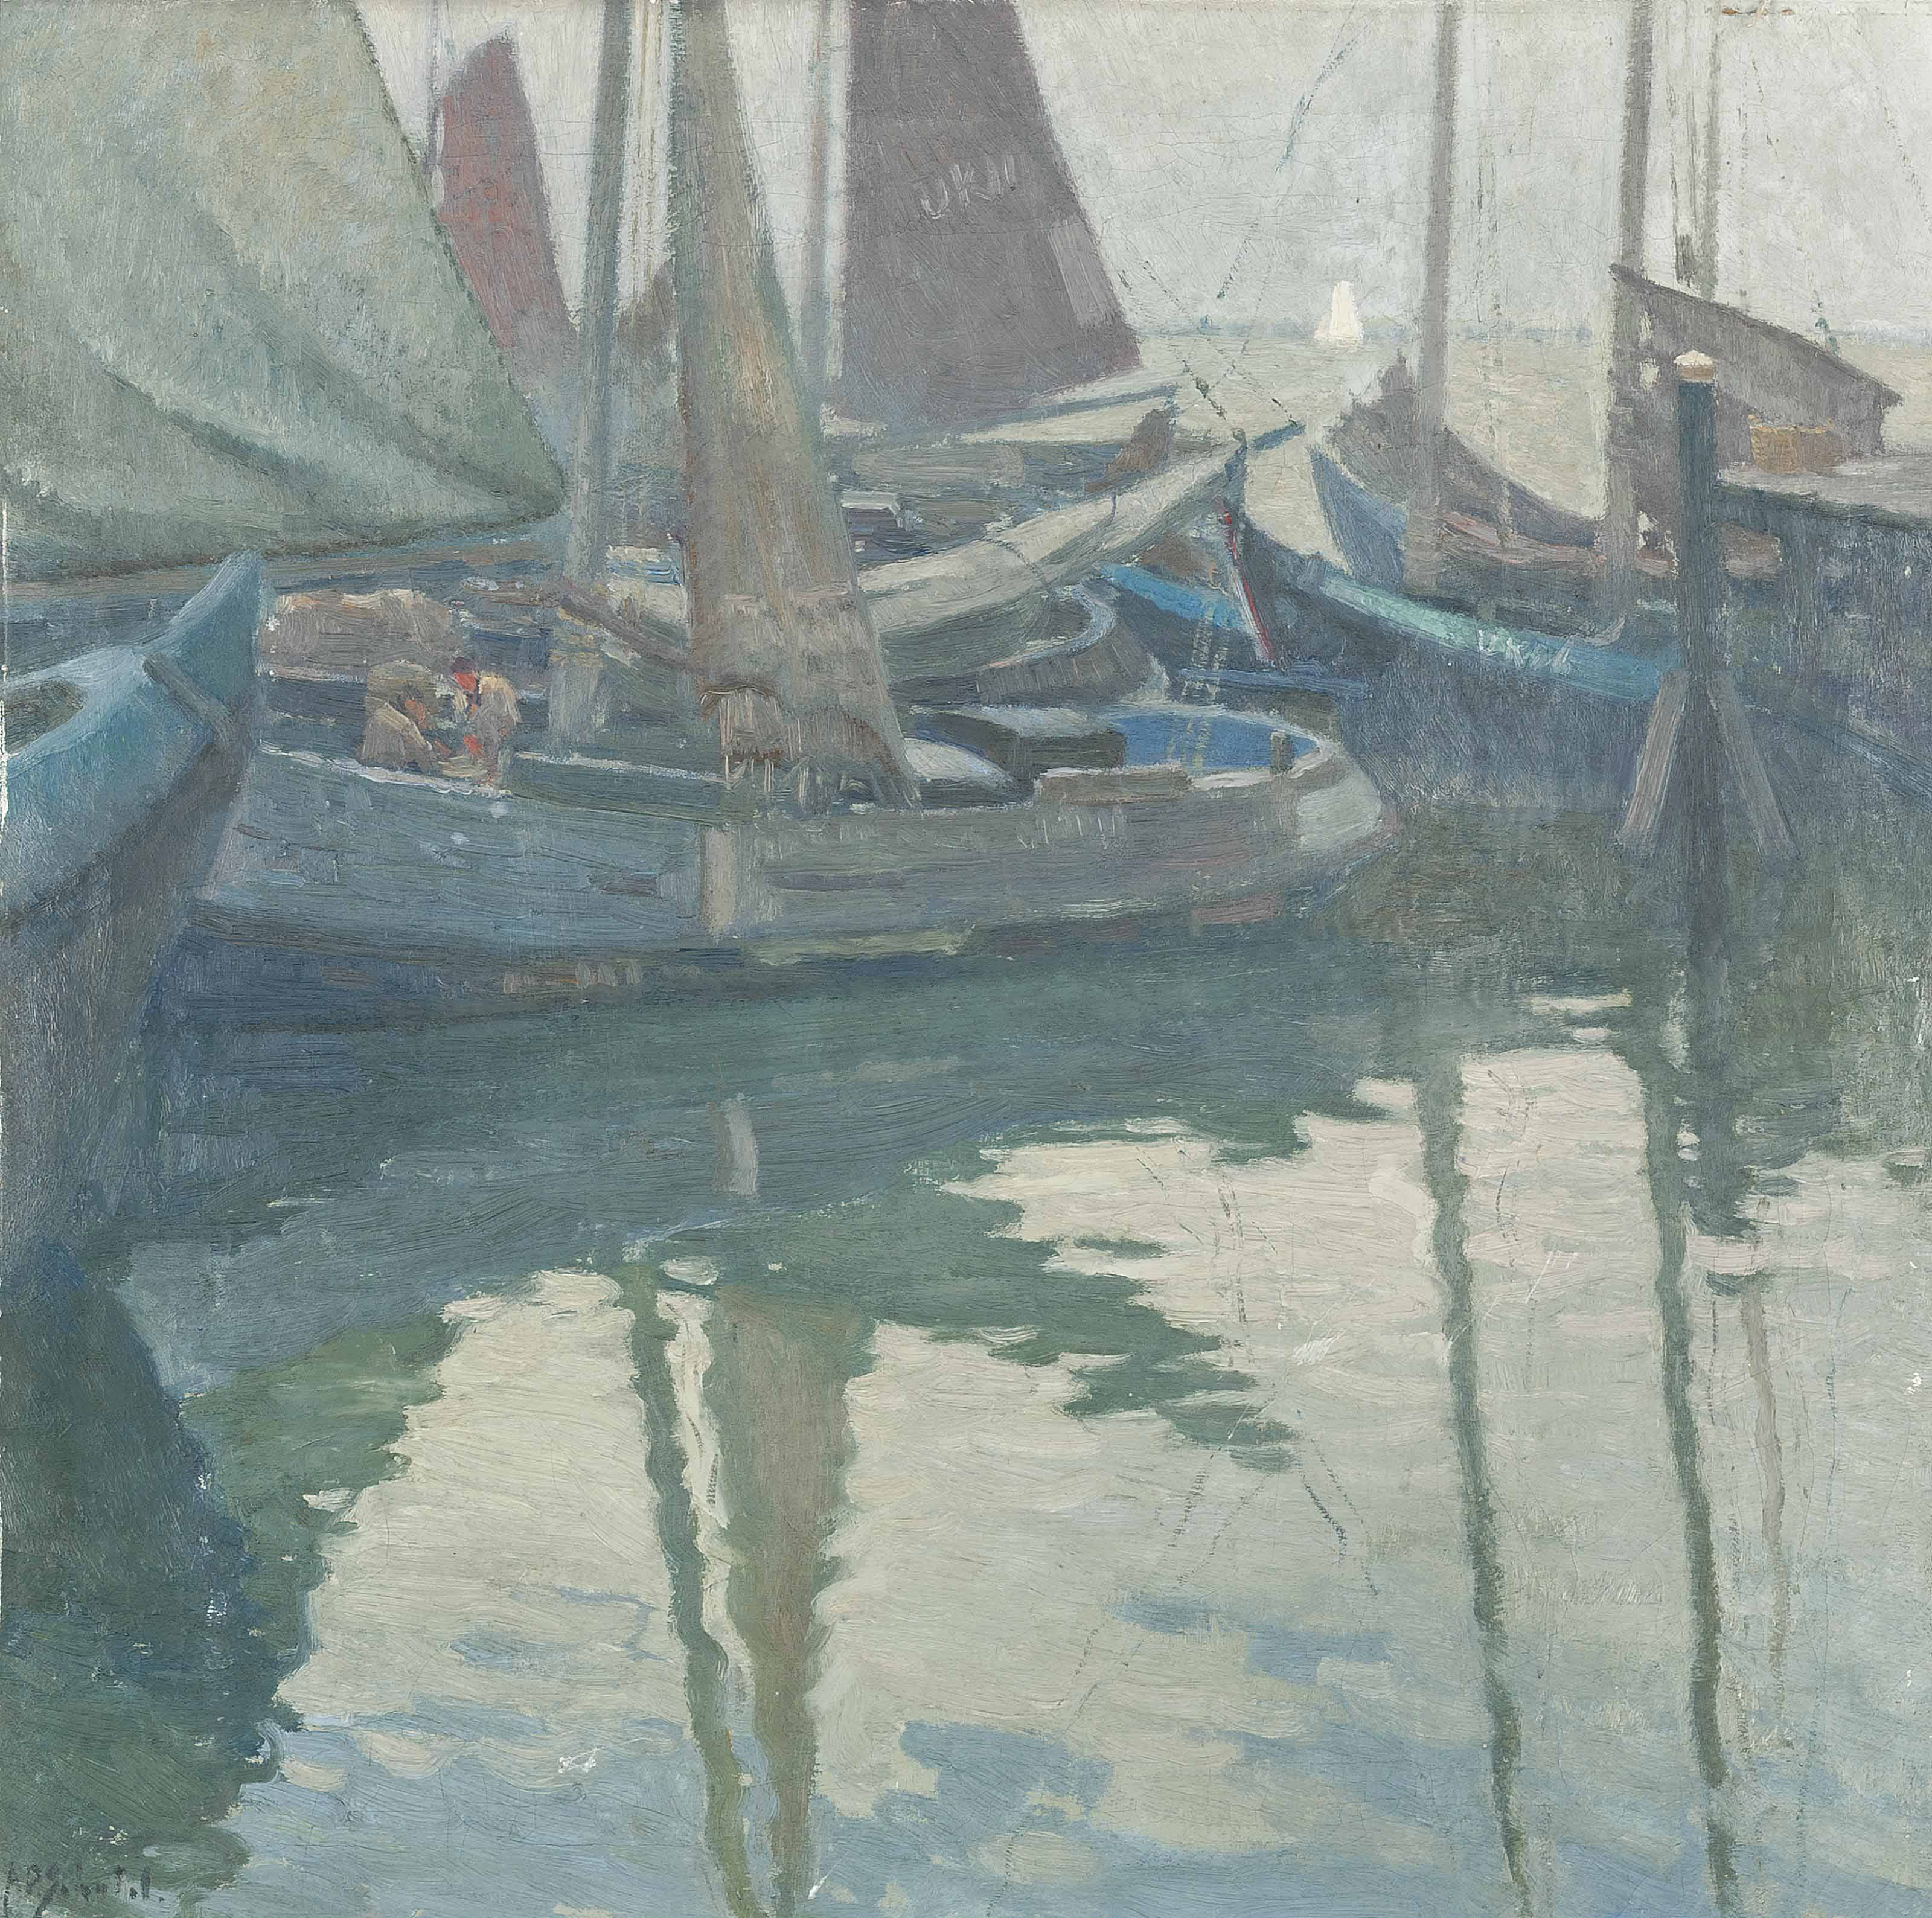 Havengezicht: Sailing boats in the harbour